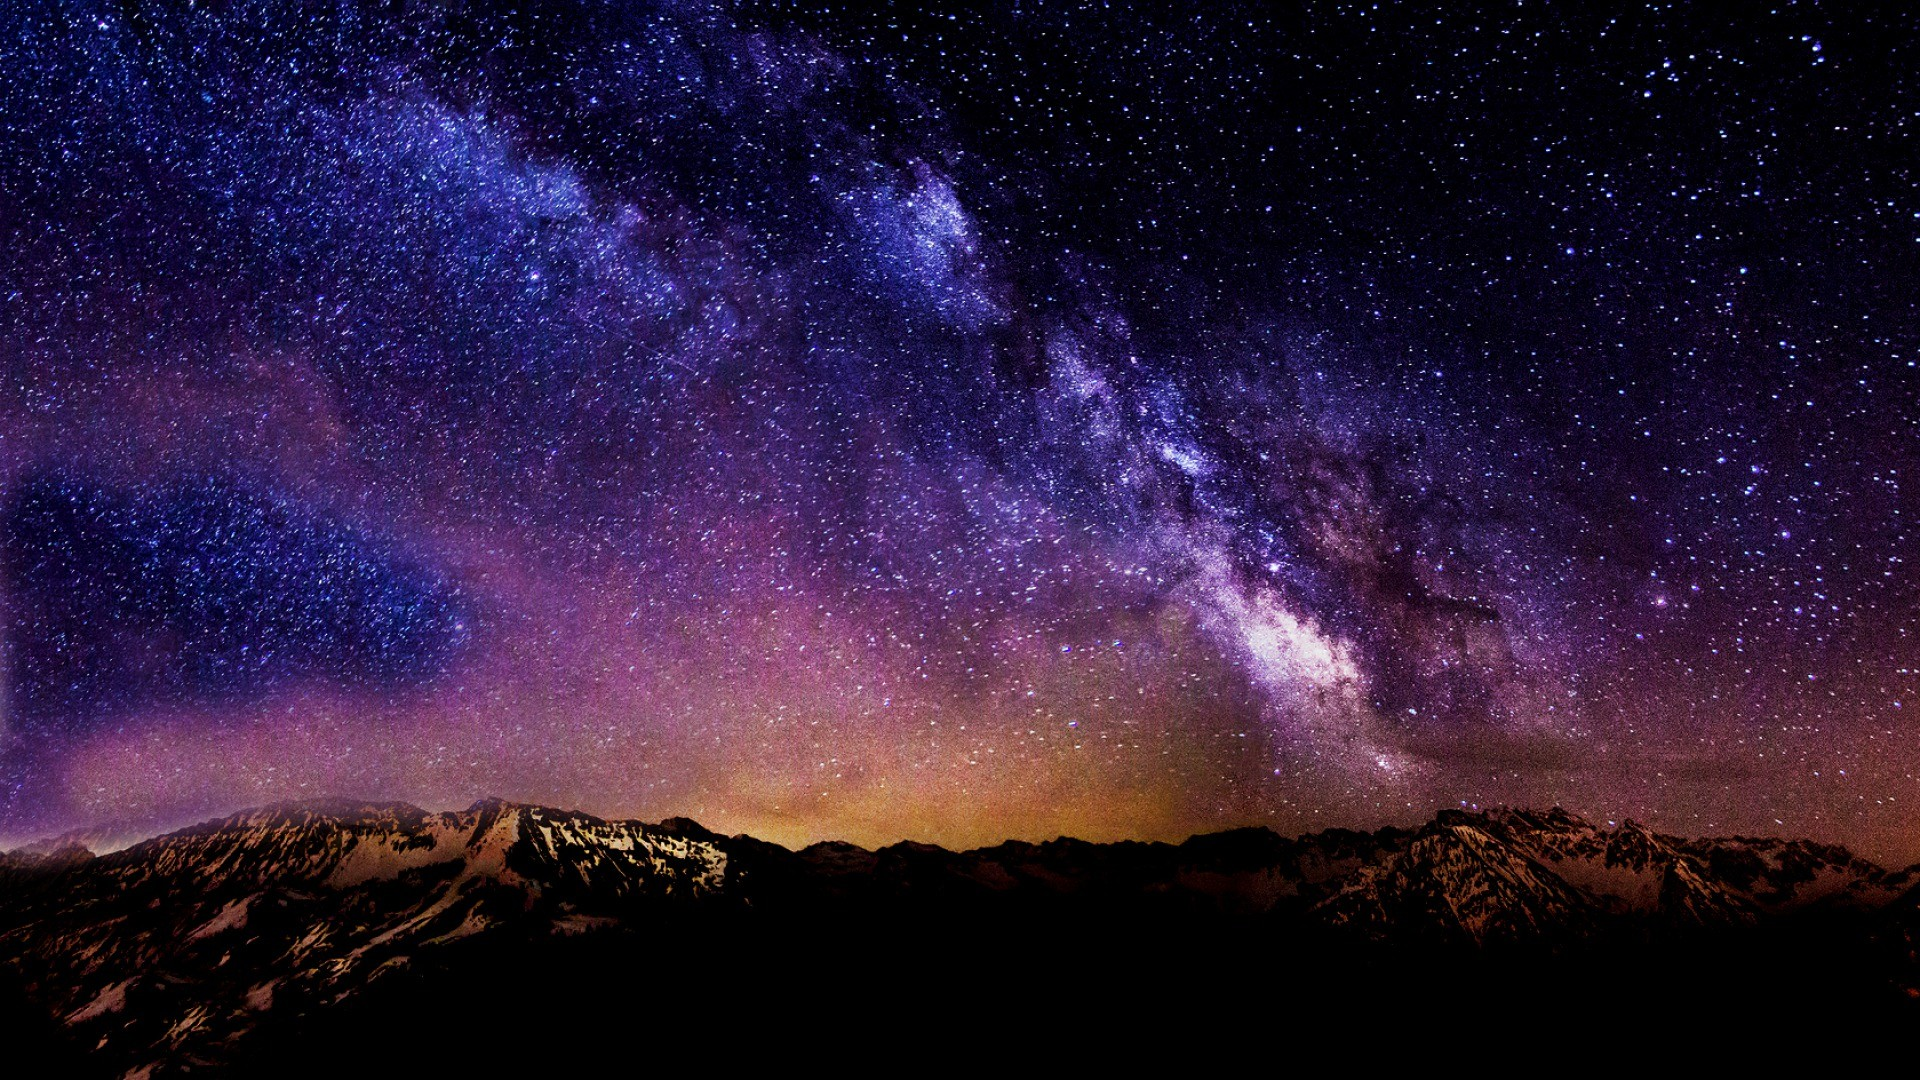 Starry Night Backgrounds (67+ Images